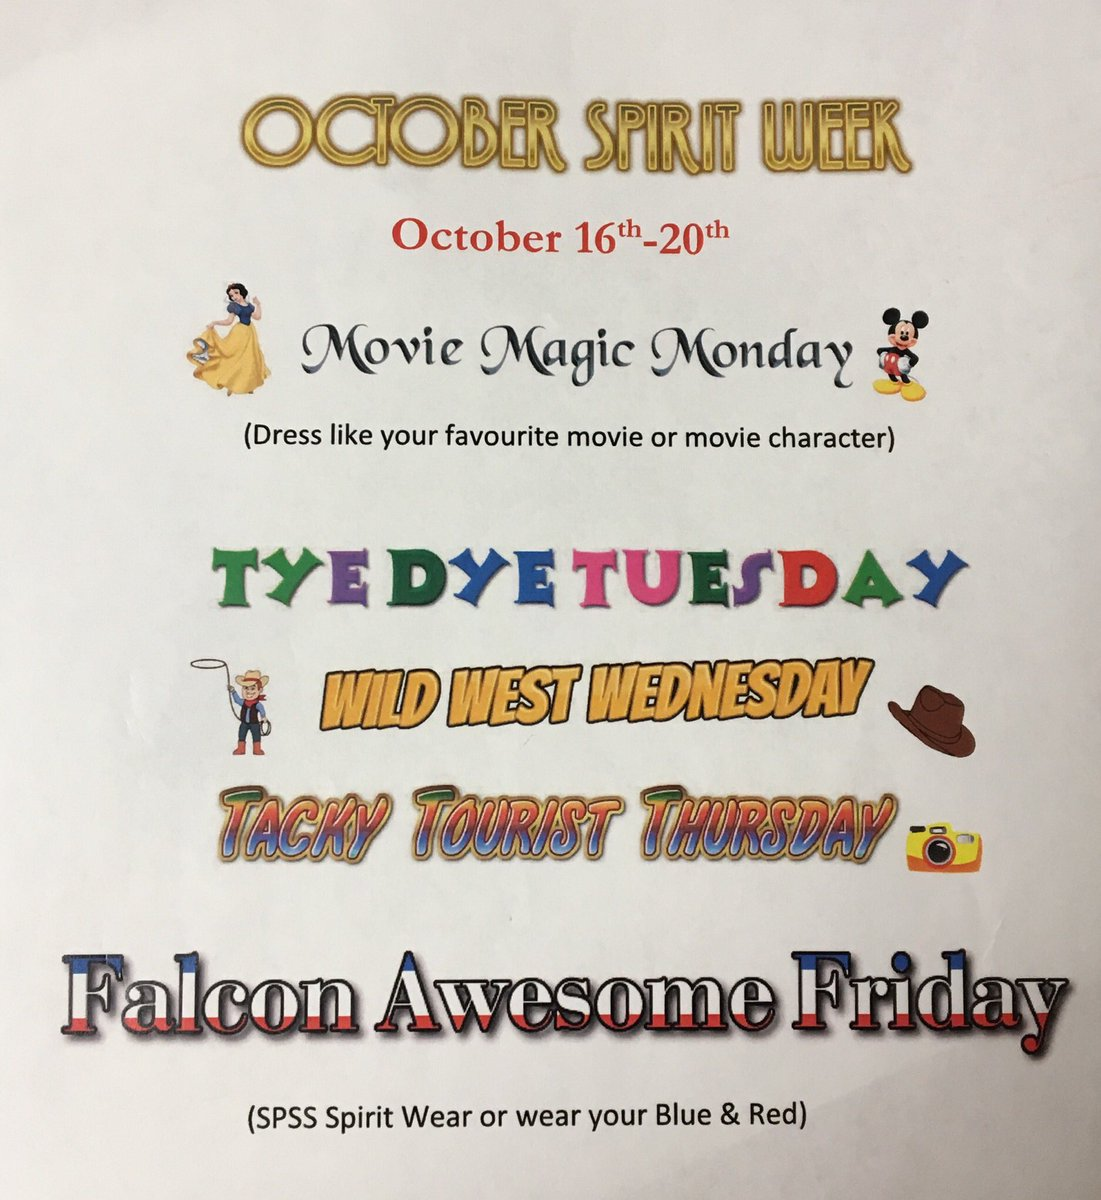 Spcss Falcons On Twitter Our Spirit Week Themes For Next Week